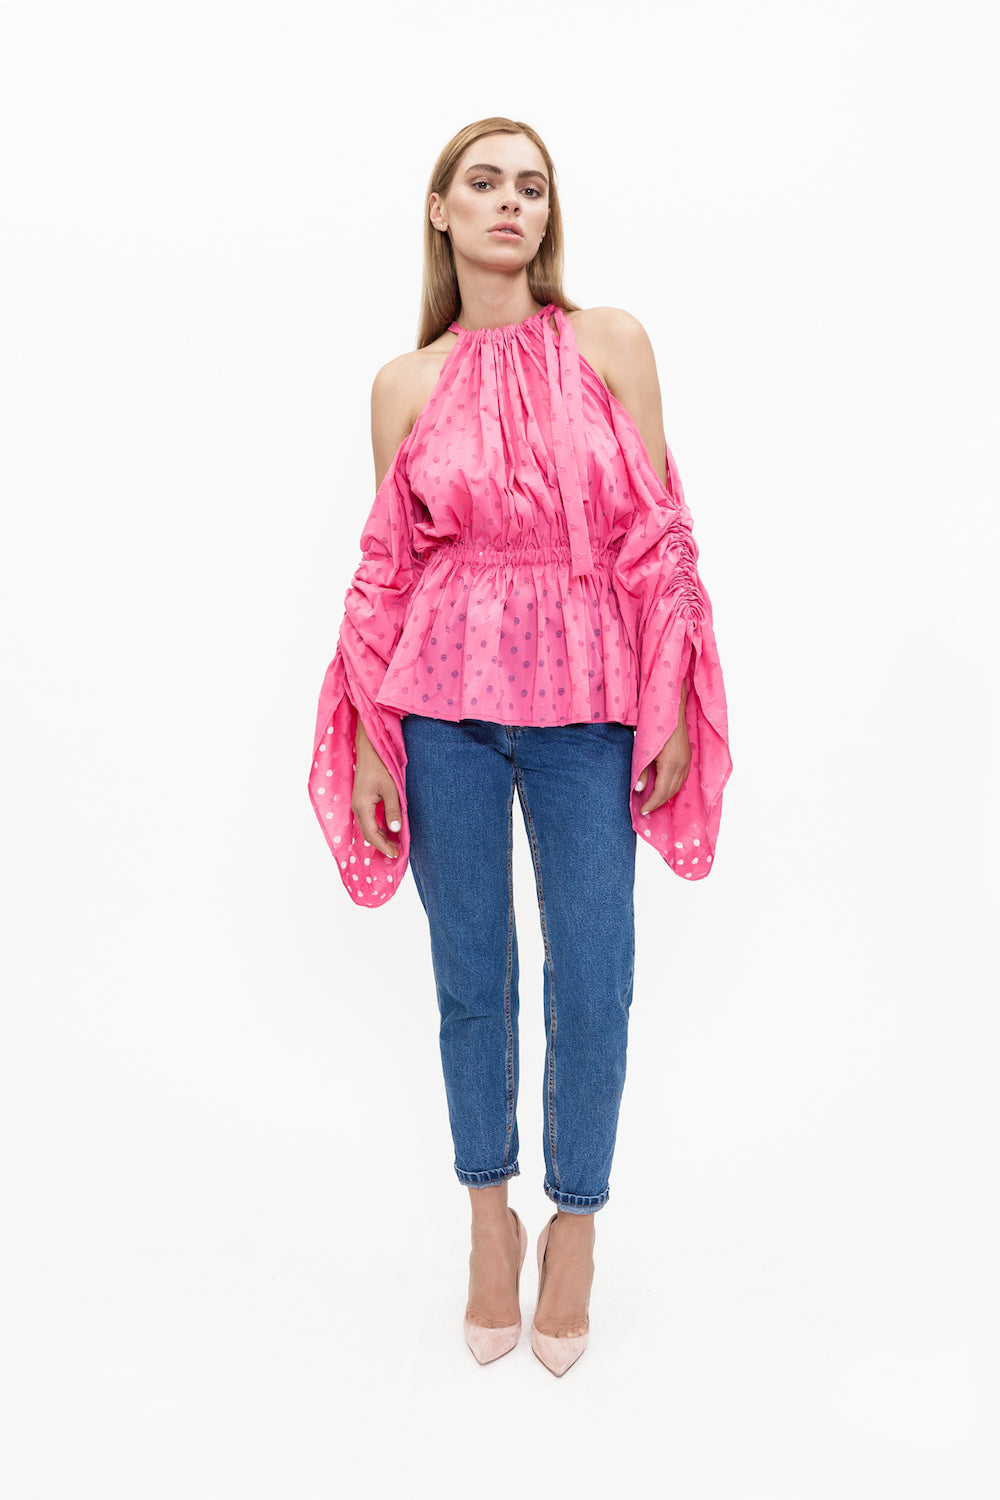 COLETTE pink top